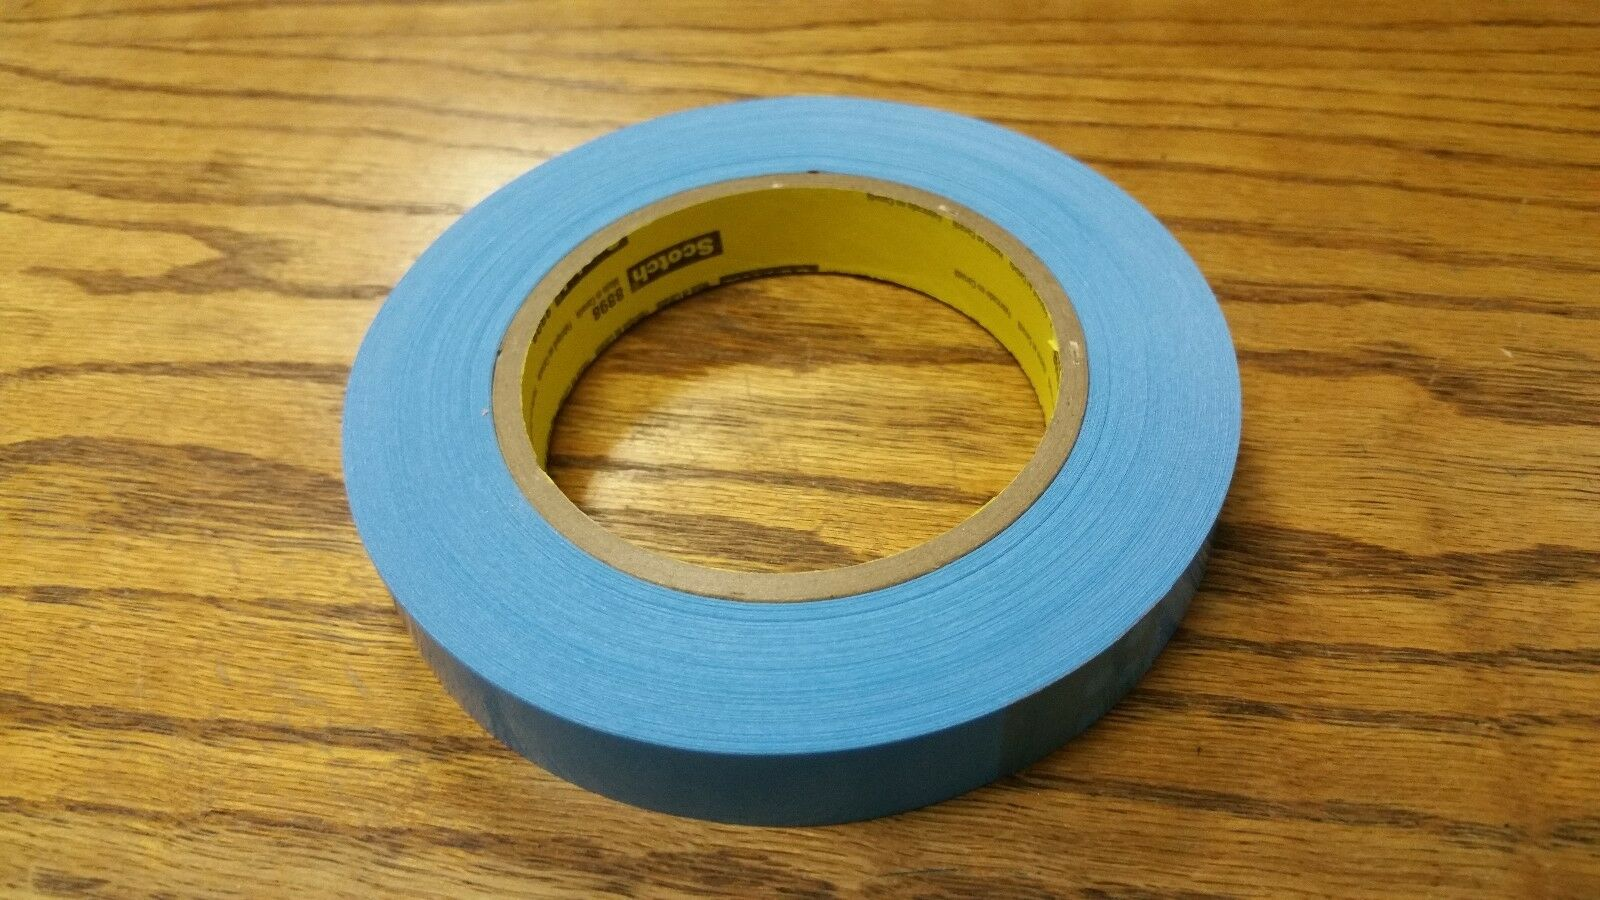 3M Scotch 8898 24mm Tubeless Bicycle Wheel Rim Tape Blue Partial ...